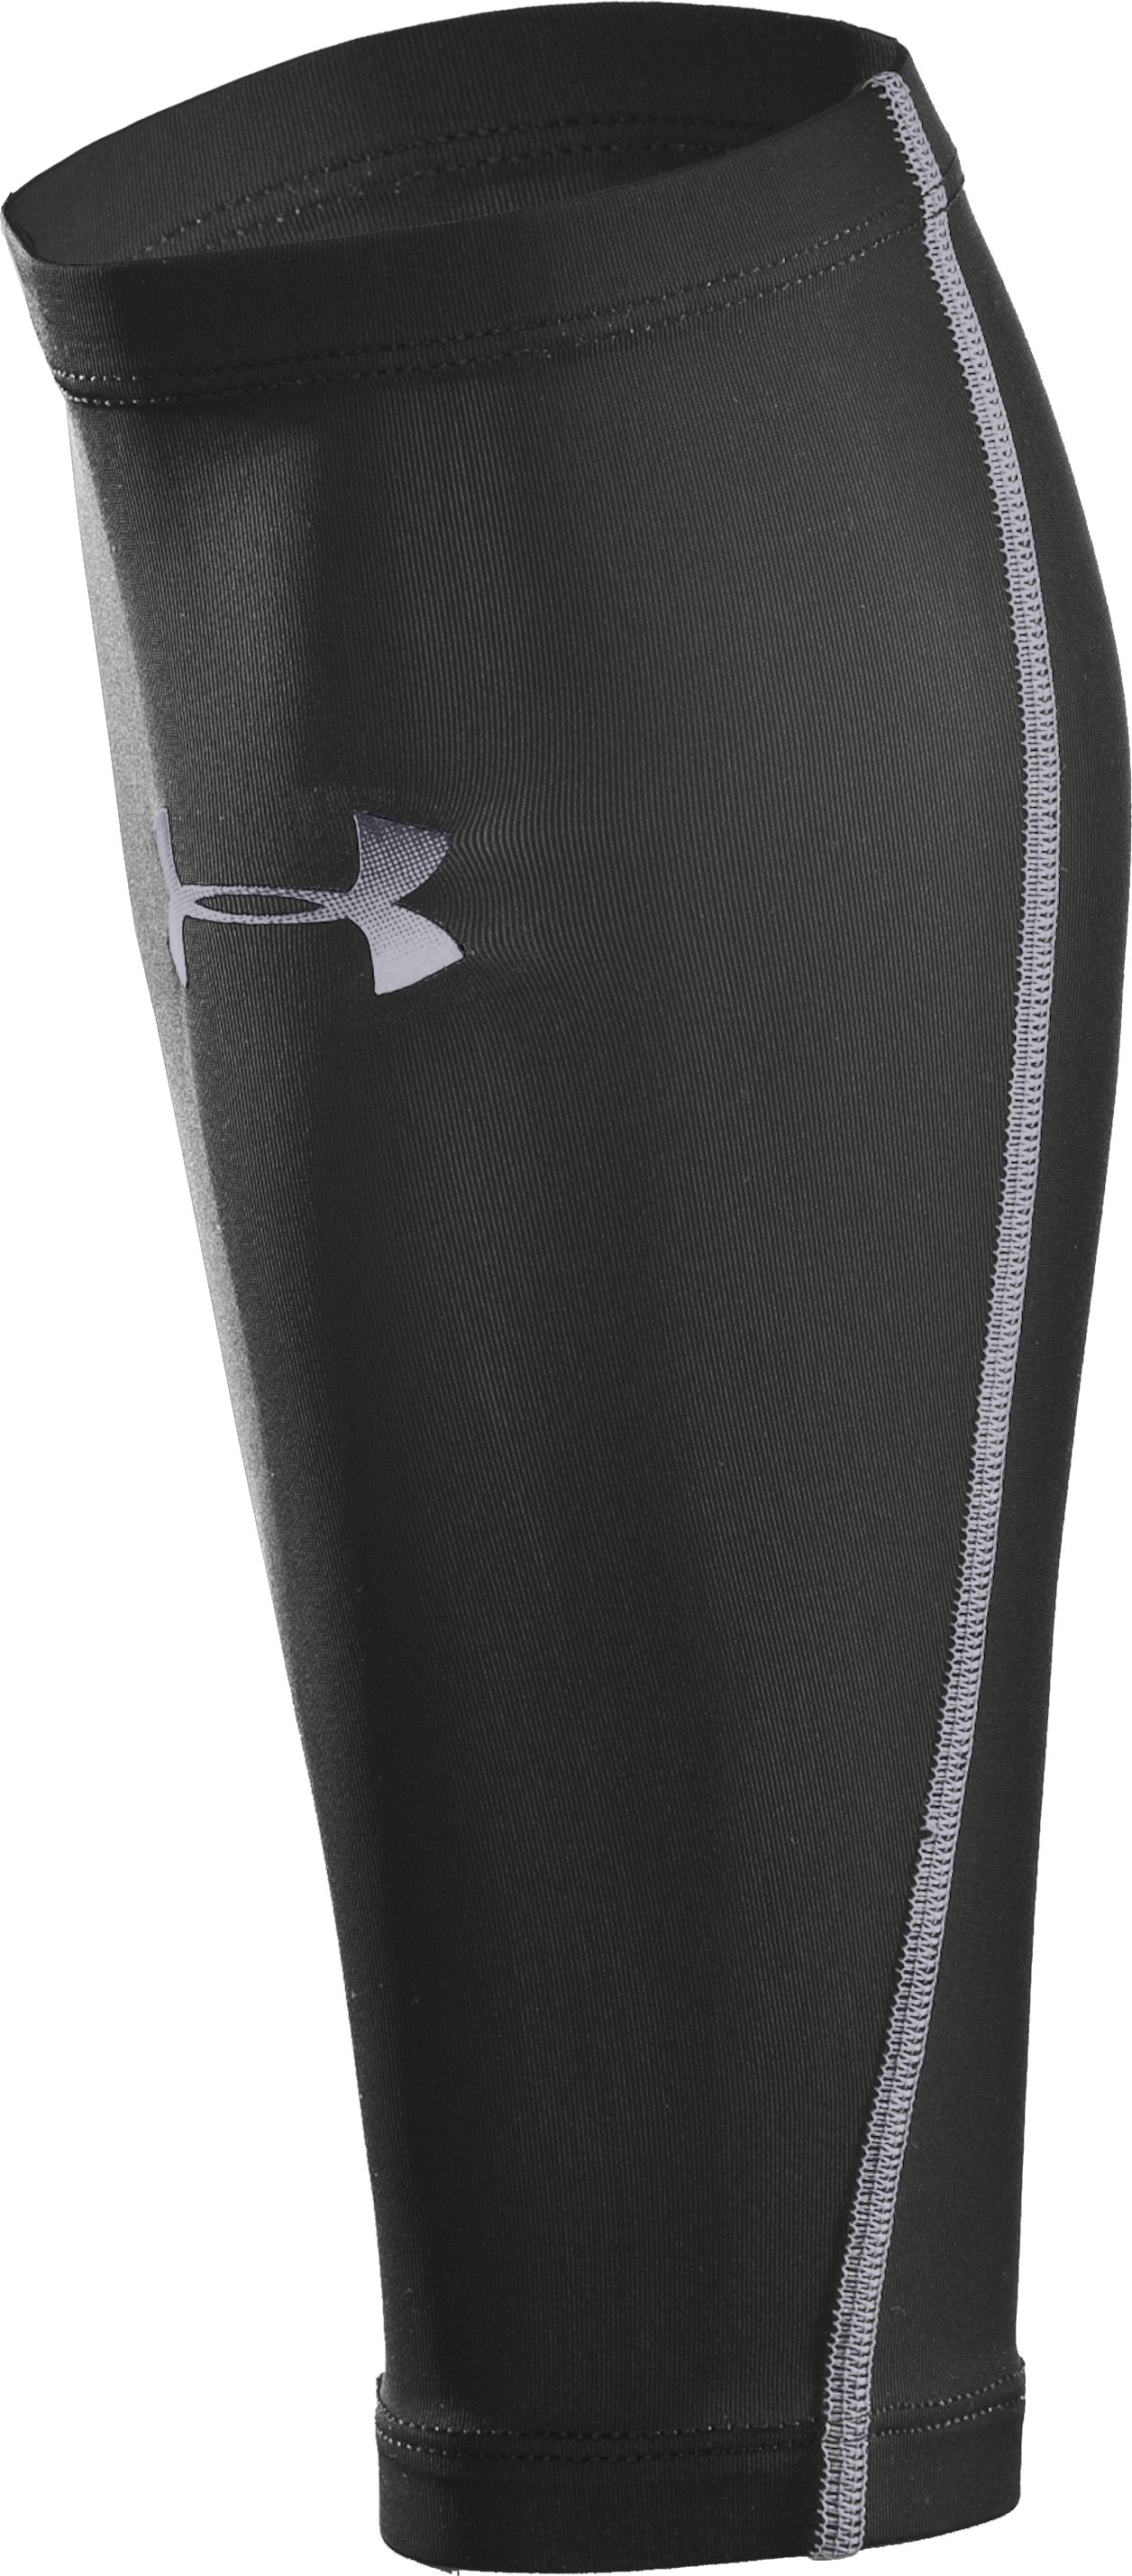 Compression Calf Sleeve, Black , zoomed image